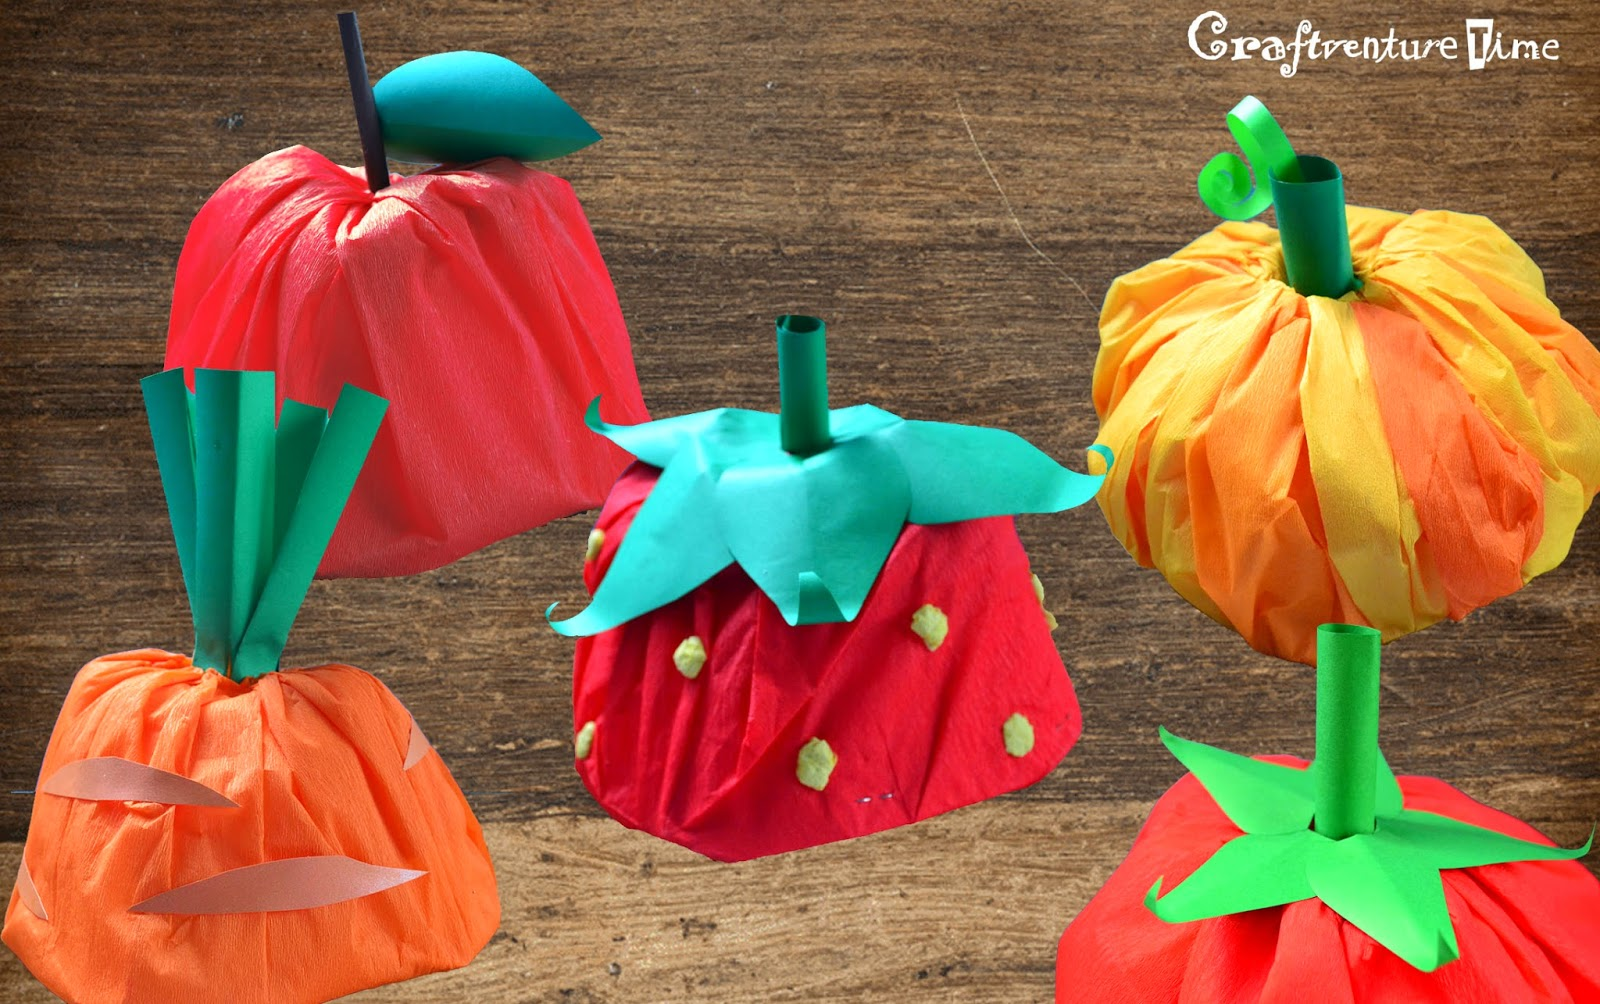 adb514d4a28 Craftventure Time  DIY Fruit and Veggies Hats from Paper Boat